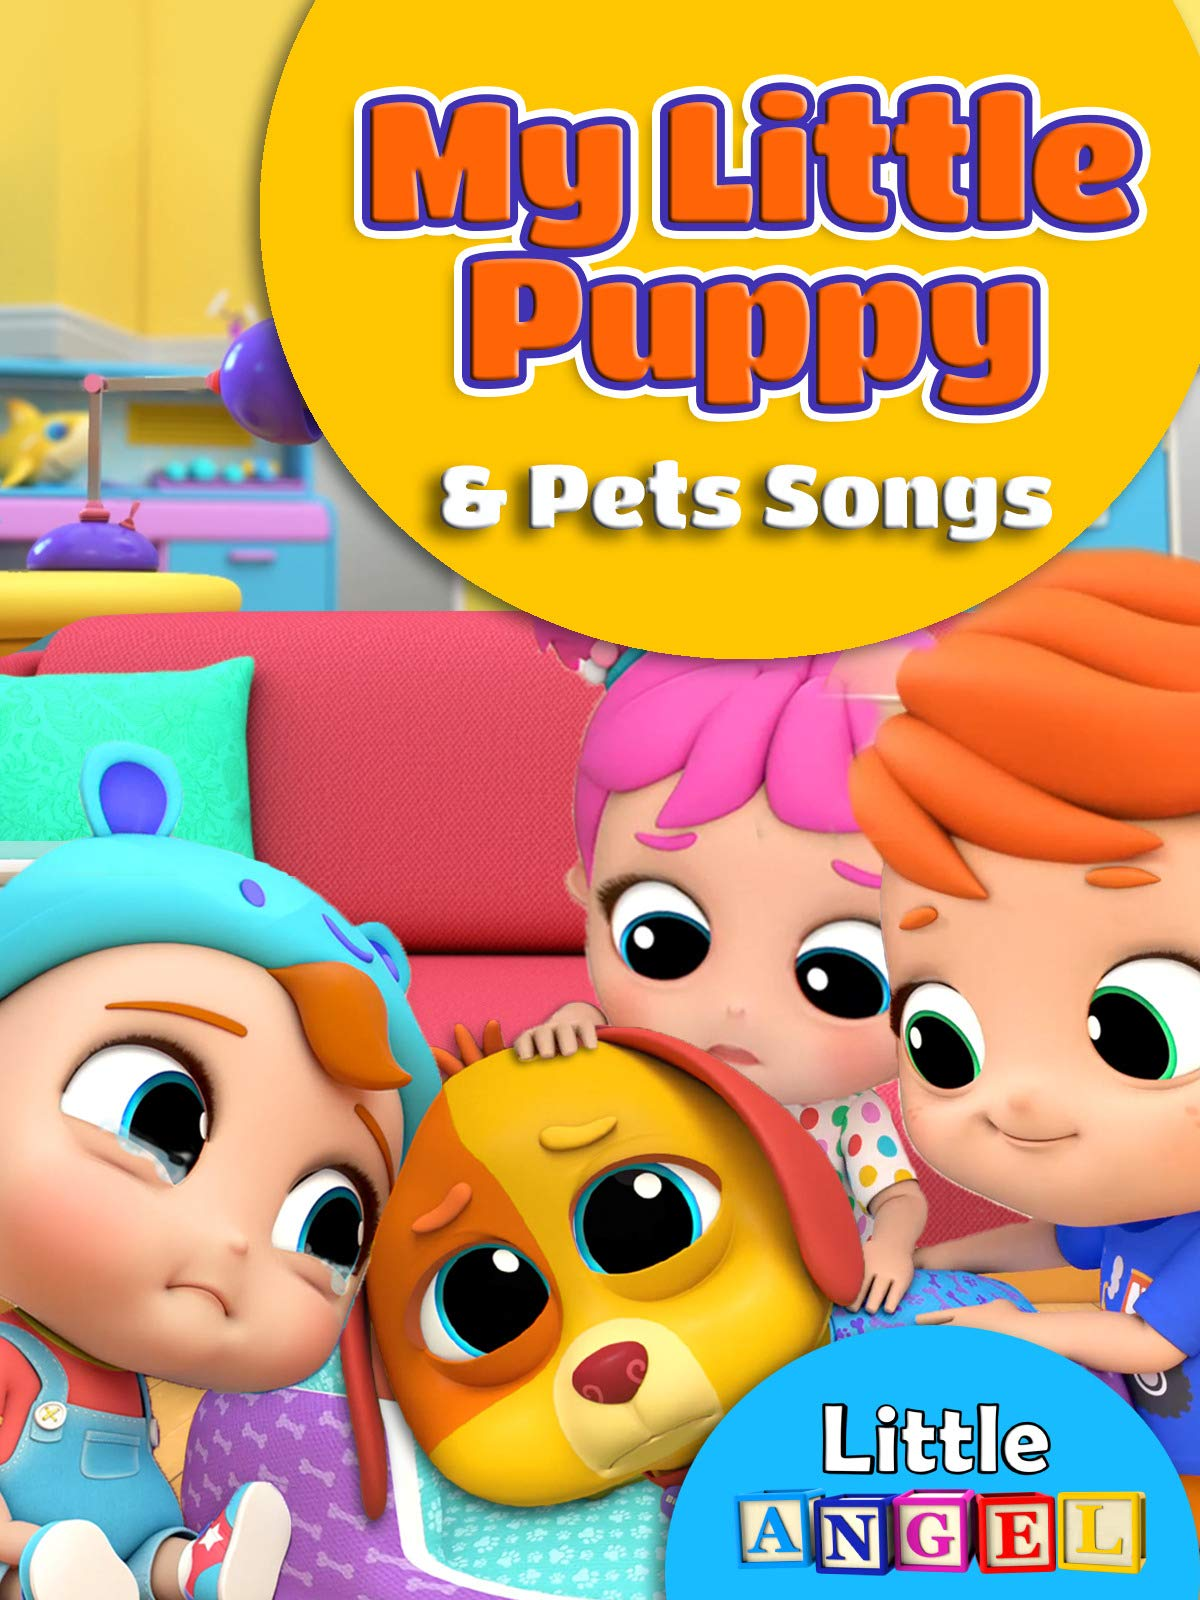 My Little Puppy and Pets Songs on Amazon Prime Video UK